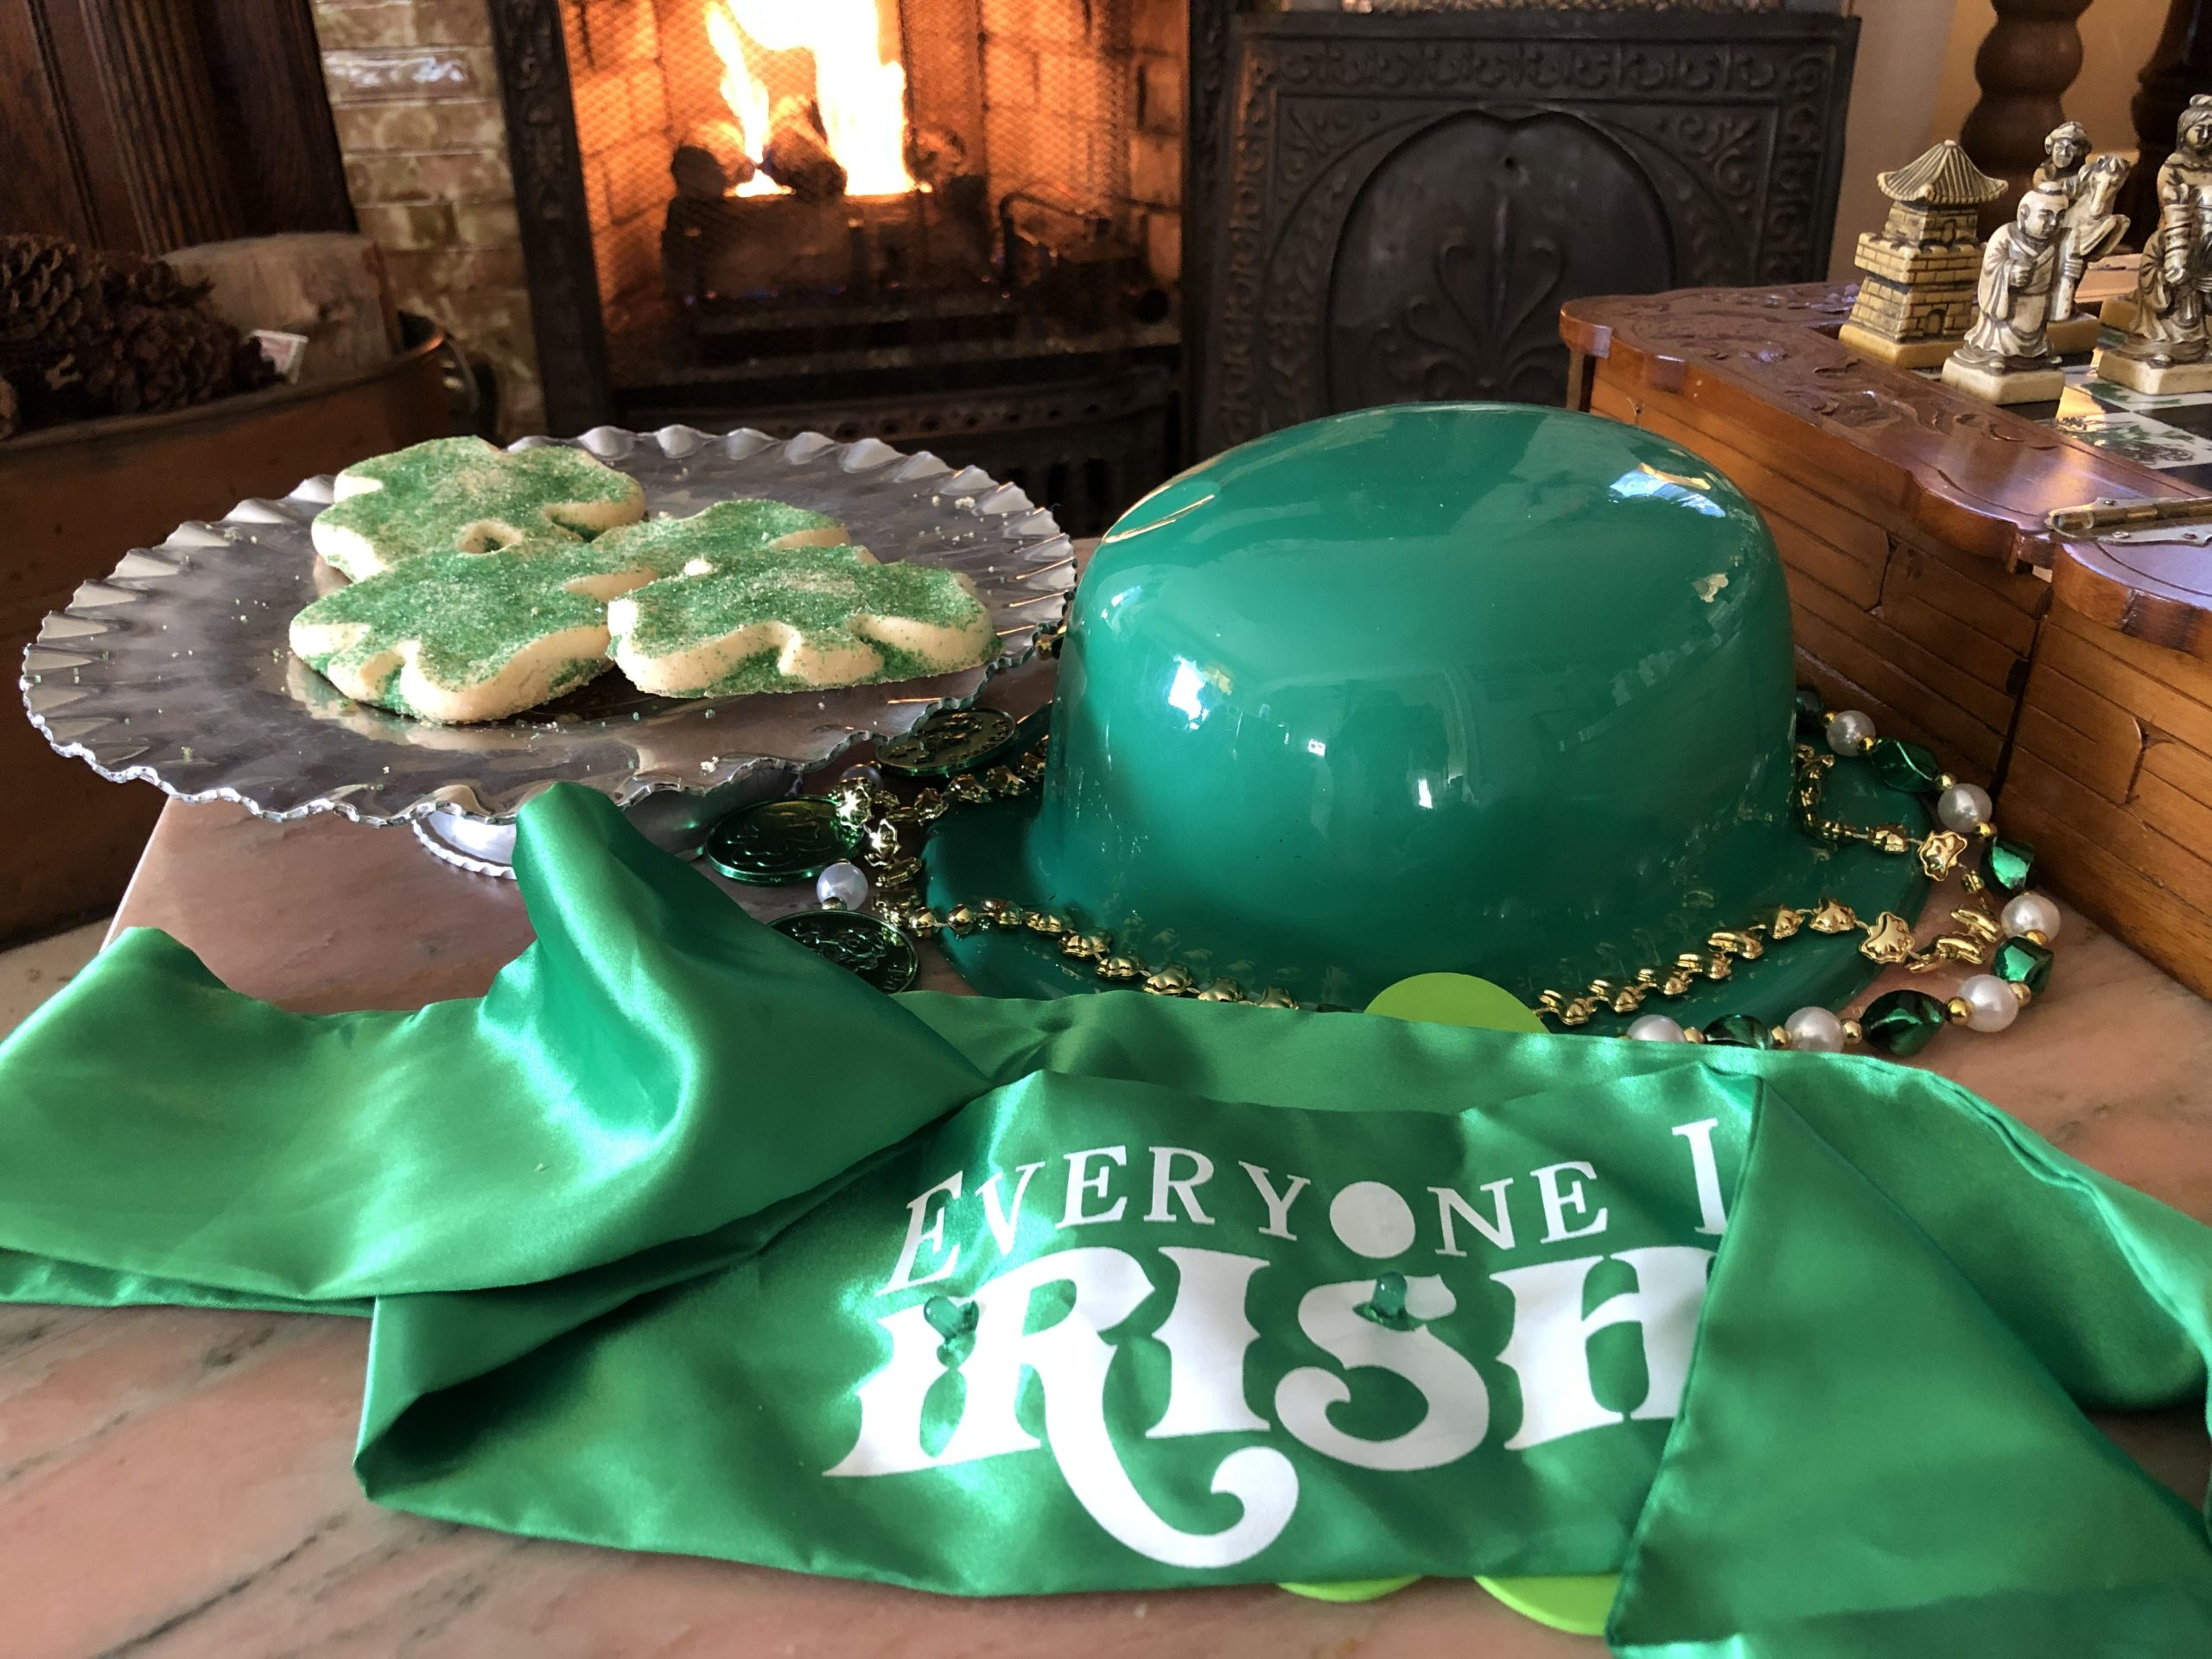 Holden House is offering March and St. Patrick's Day specials